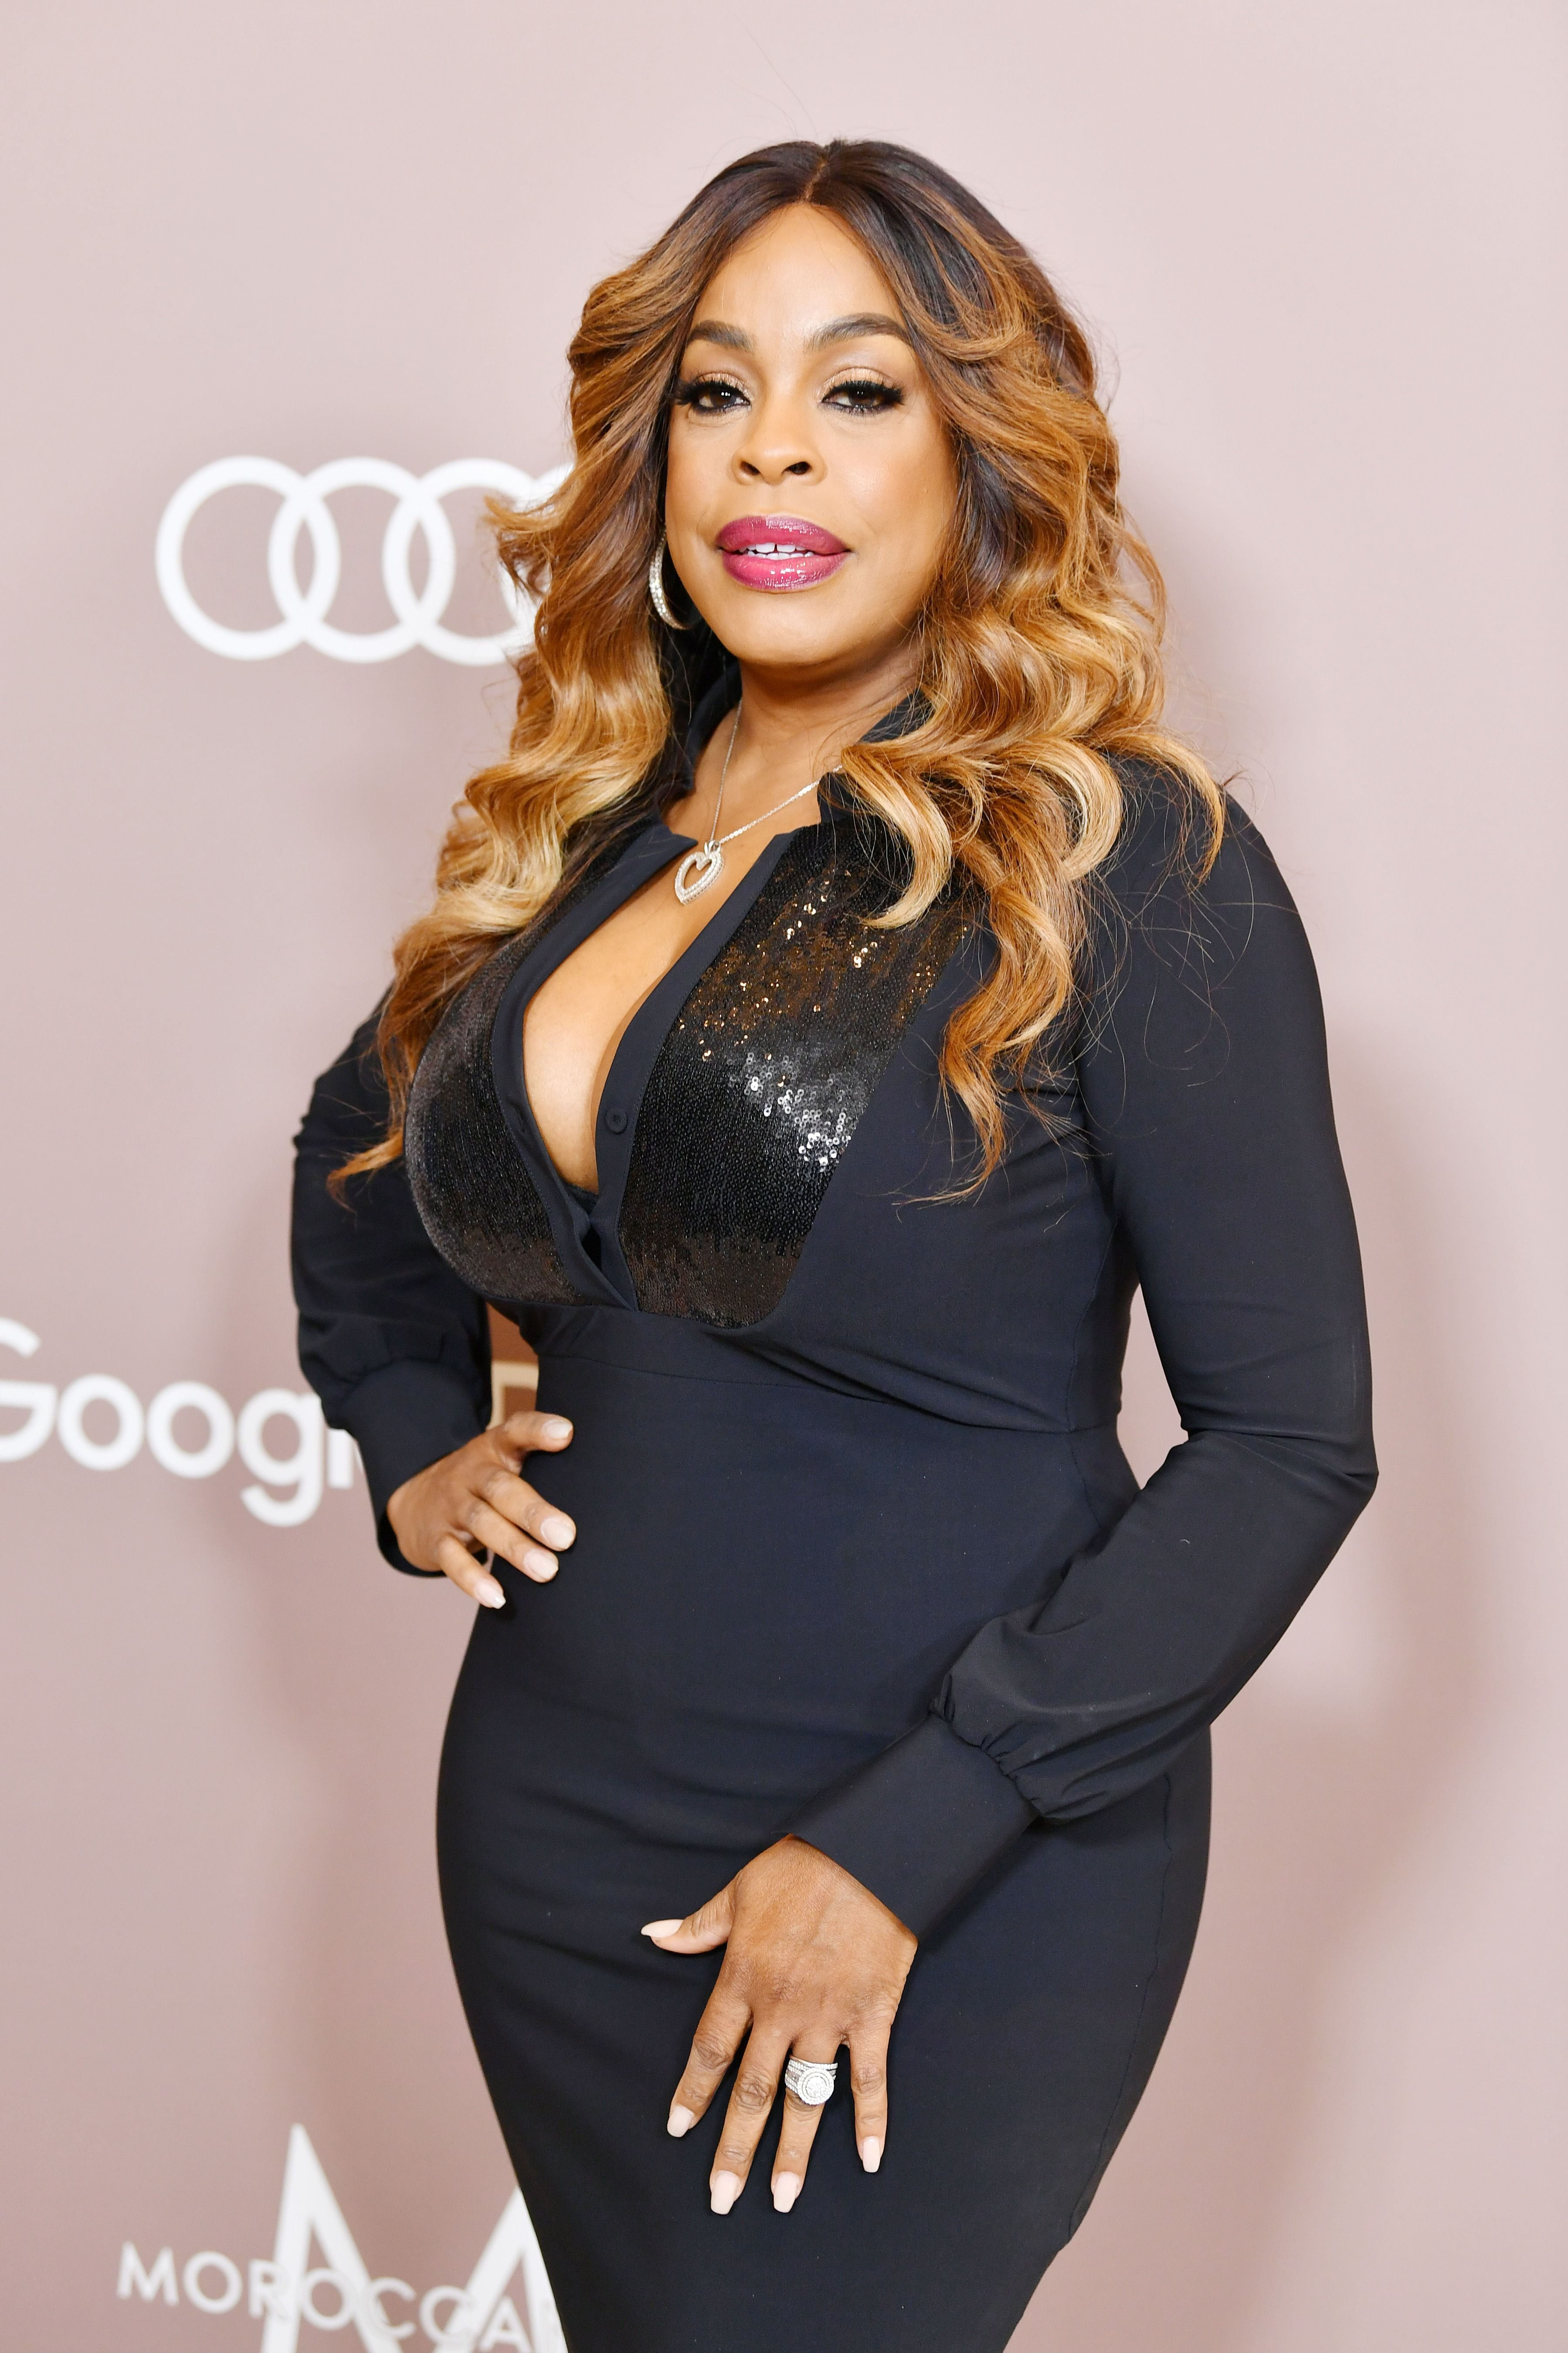 Niecy Nash at Variety's 2019 Power of Women: Los Angeles presented by Lifetime at the Beverly Wilshire Four Seasons Hotel on October 11, 2019 in Beverly Hills, California. | Source: Getty Images